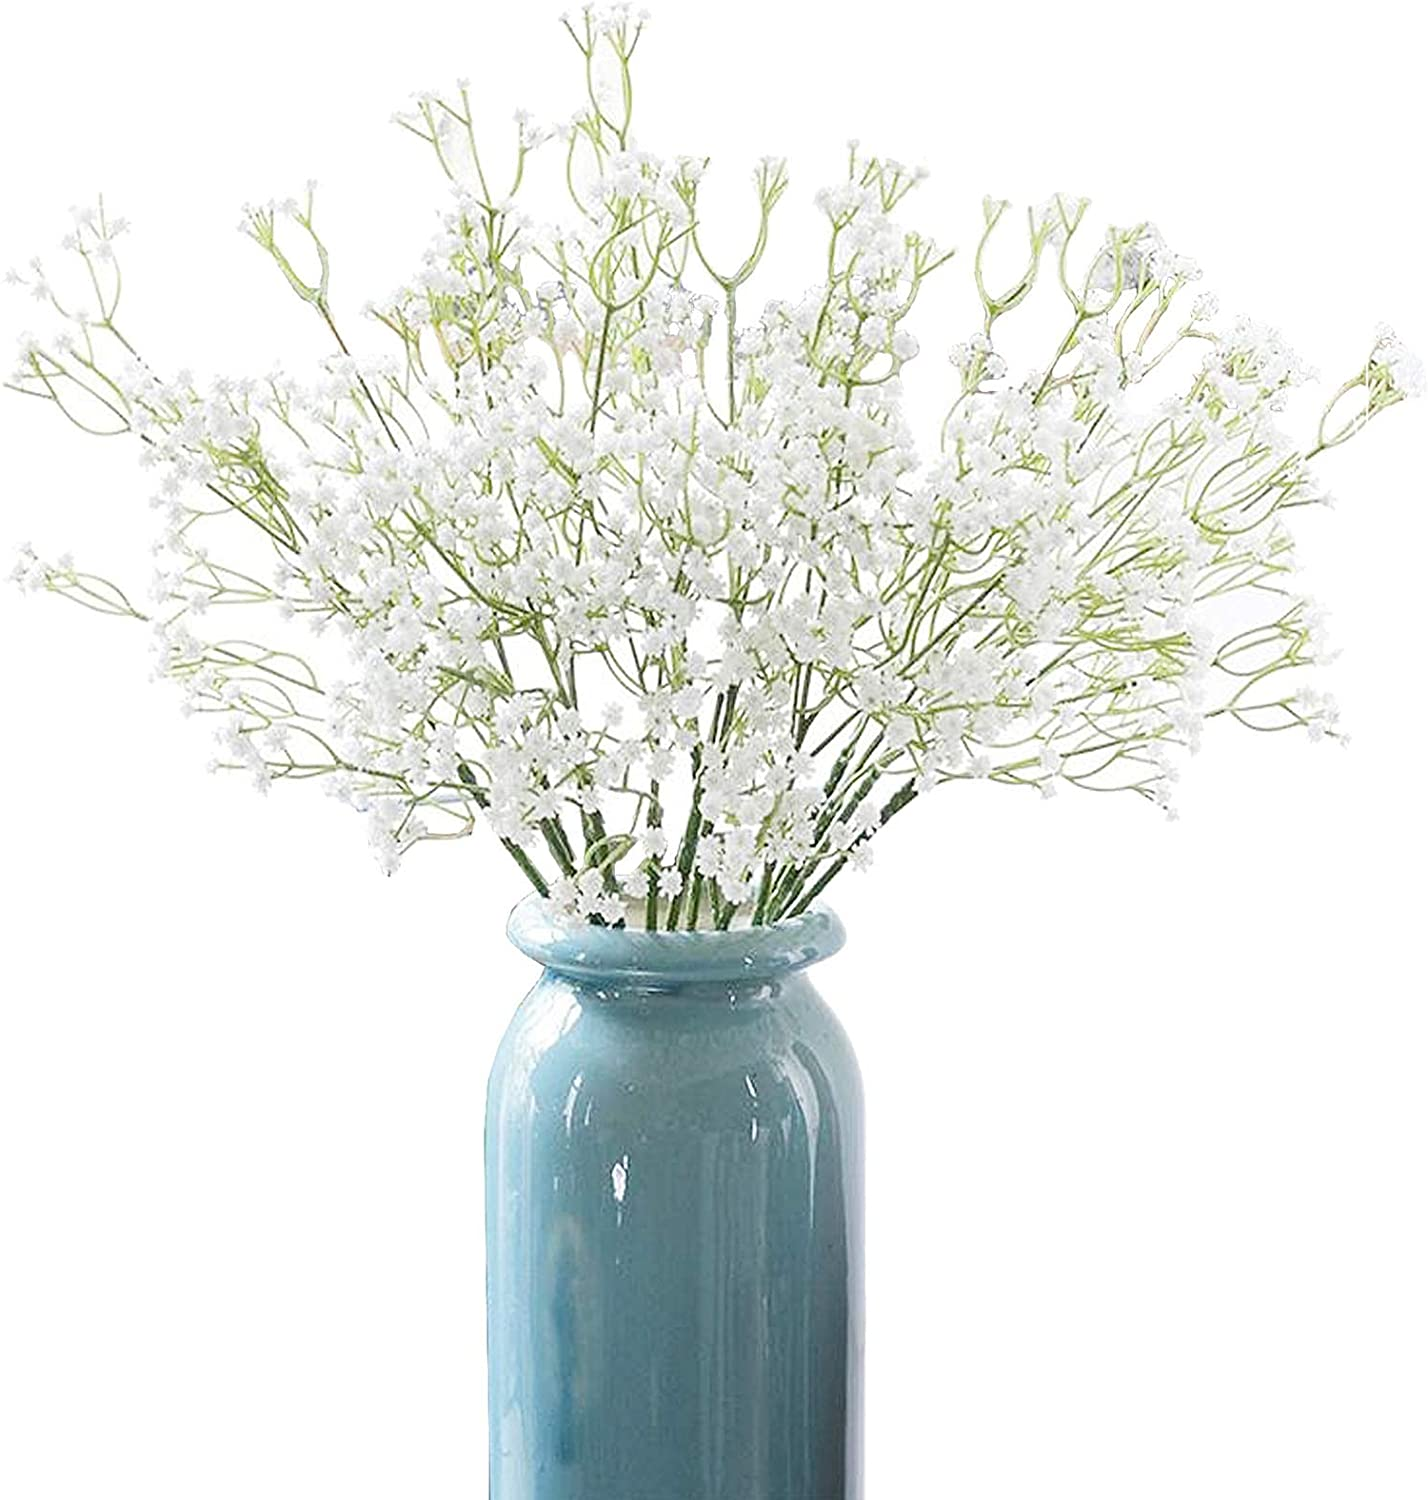 Xilanhhaa 9 Bunchs of Babys Breath Artificial Flowers,Fake White Flowers,Gypsophila Real Touch Flowers for Wedding Home DIY Decor